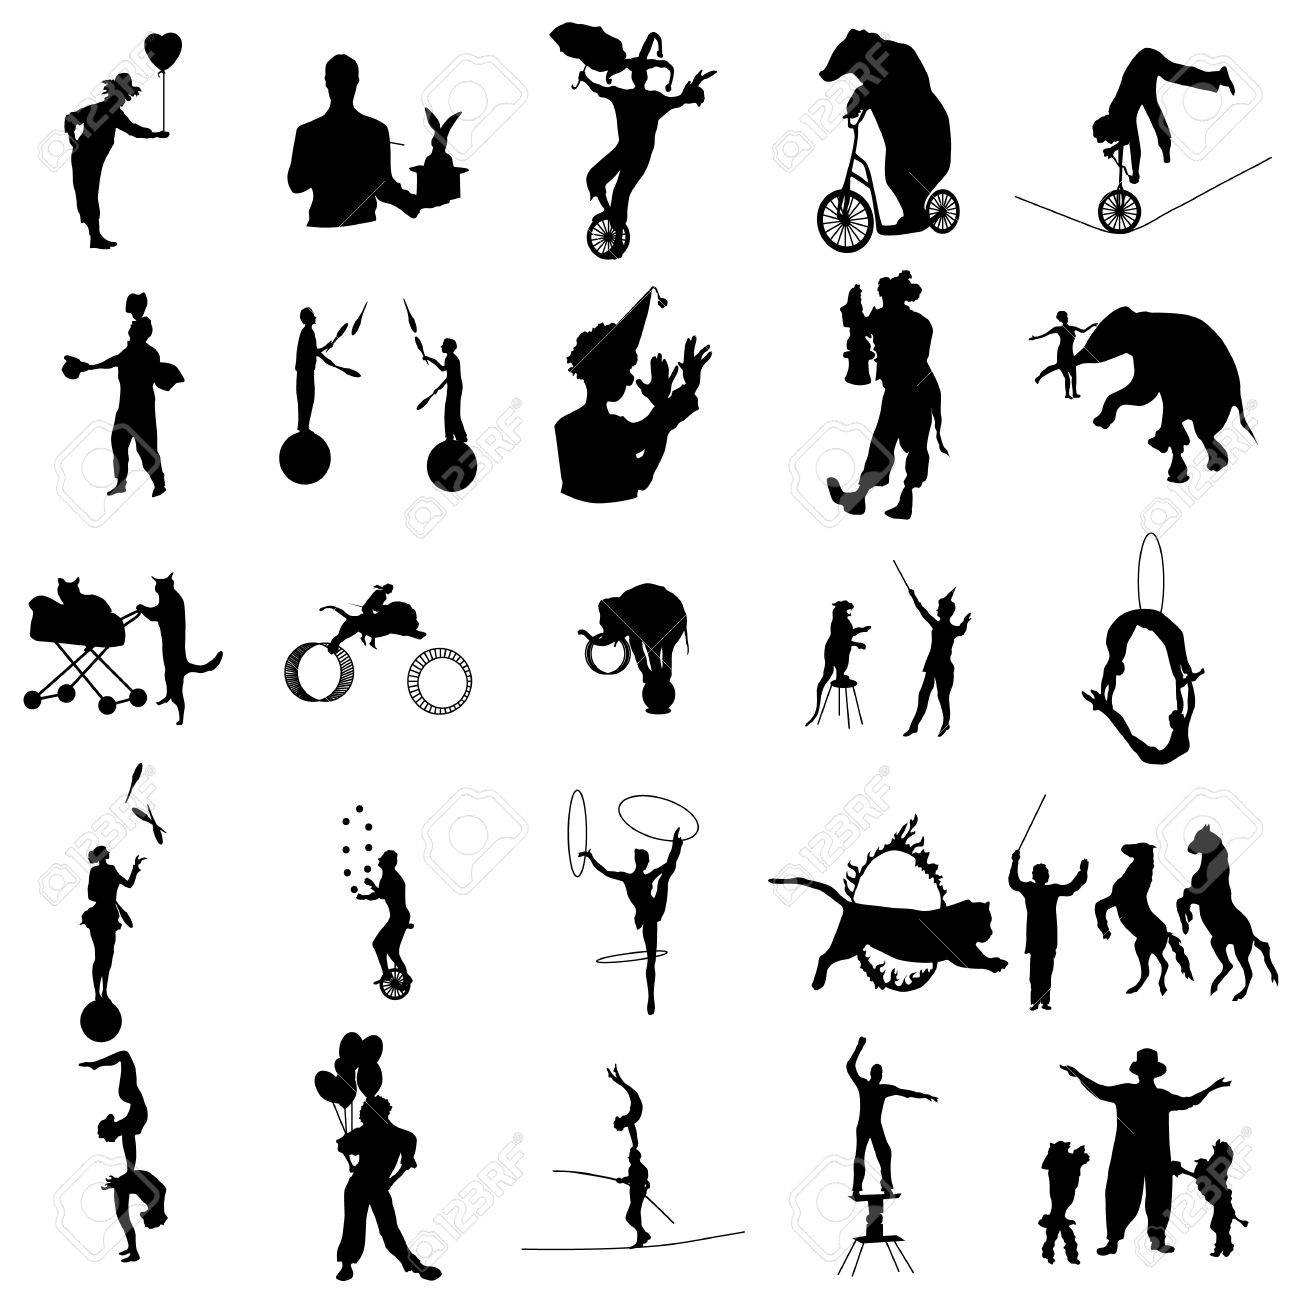 Circus silhouette set in simple style on a white background - 55956563